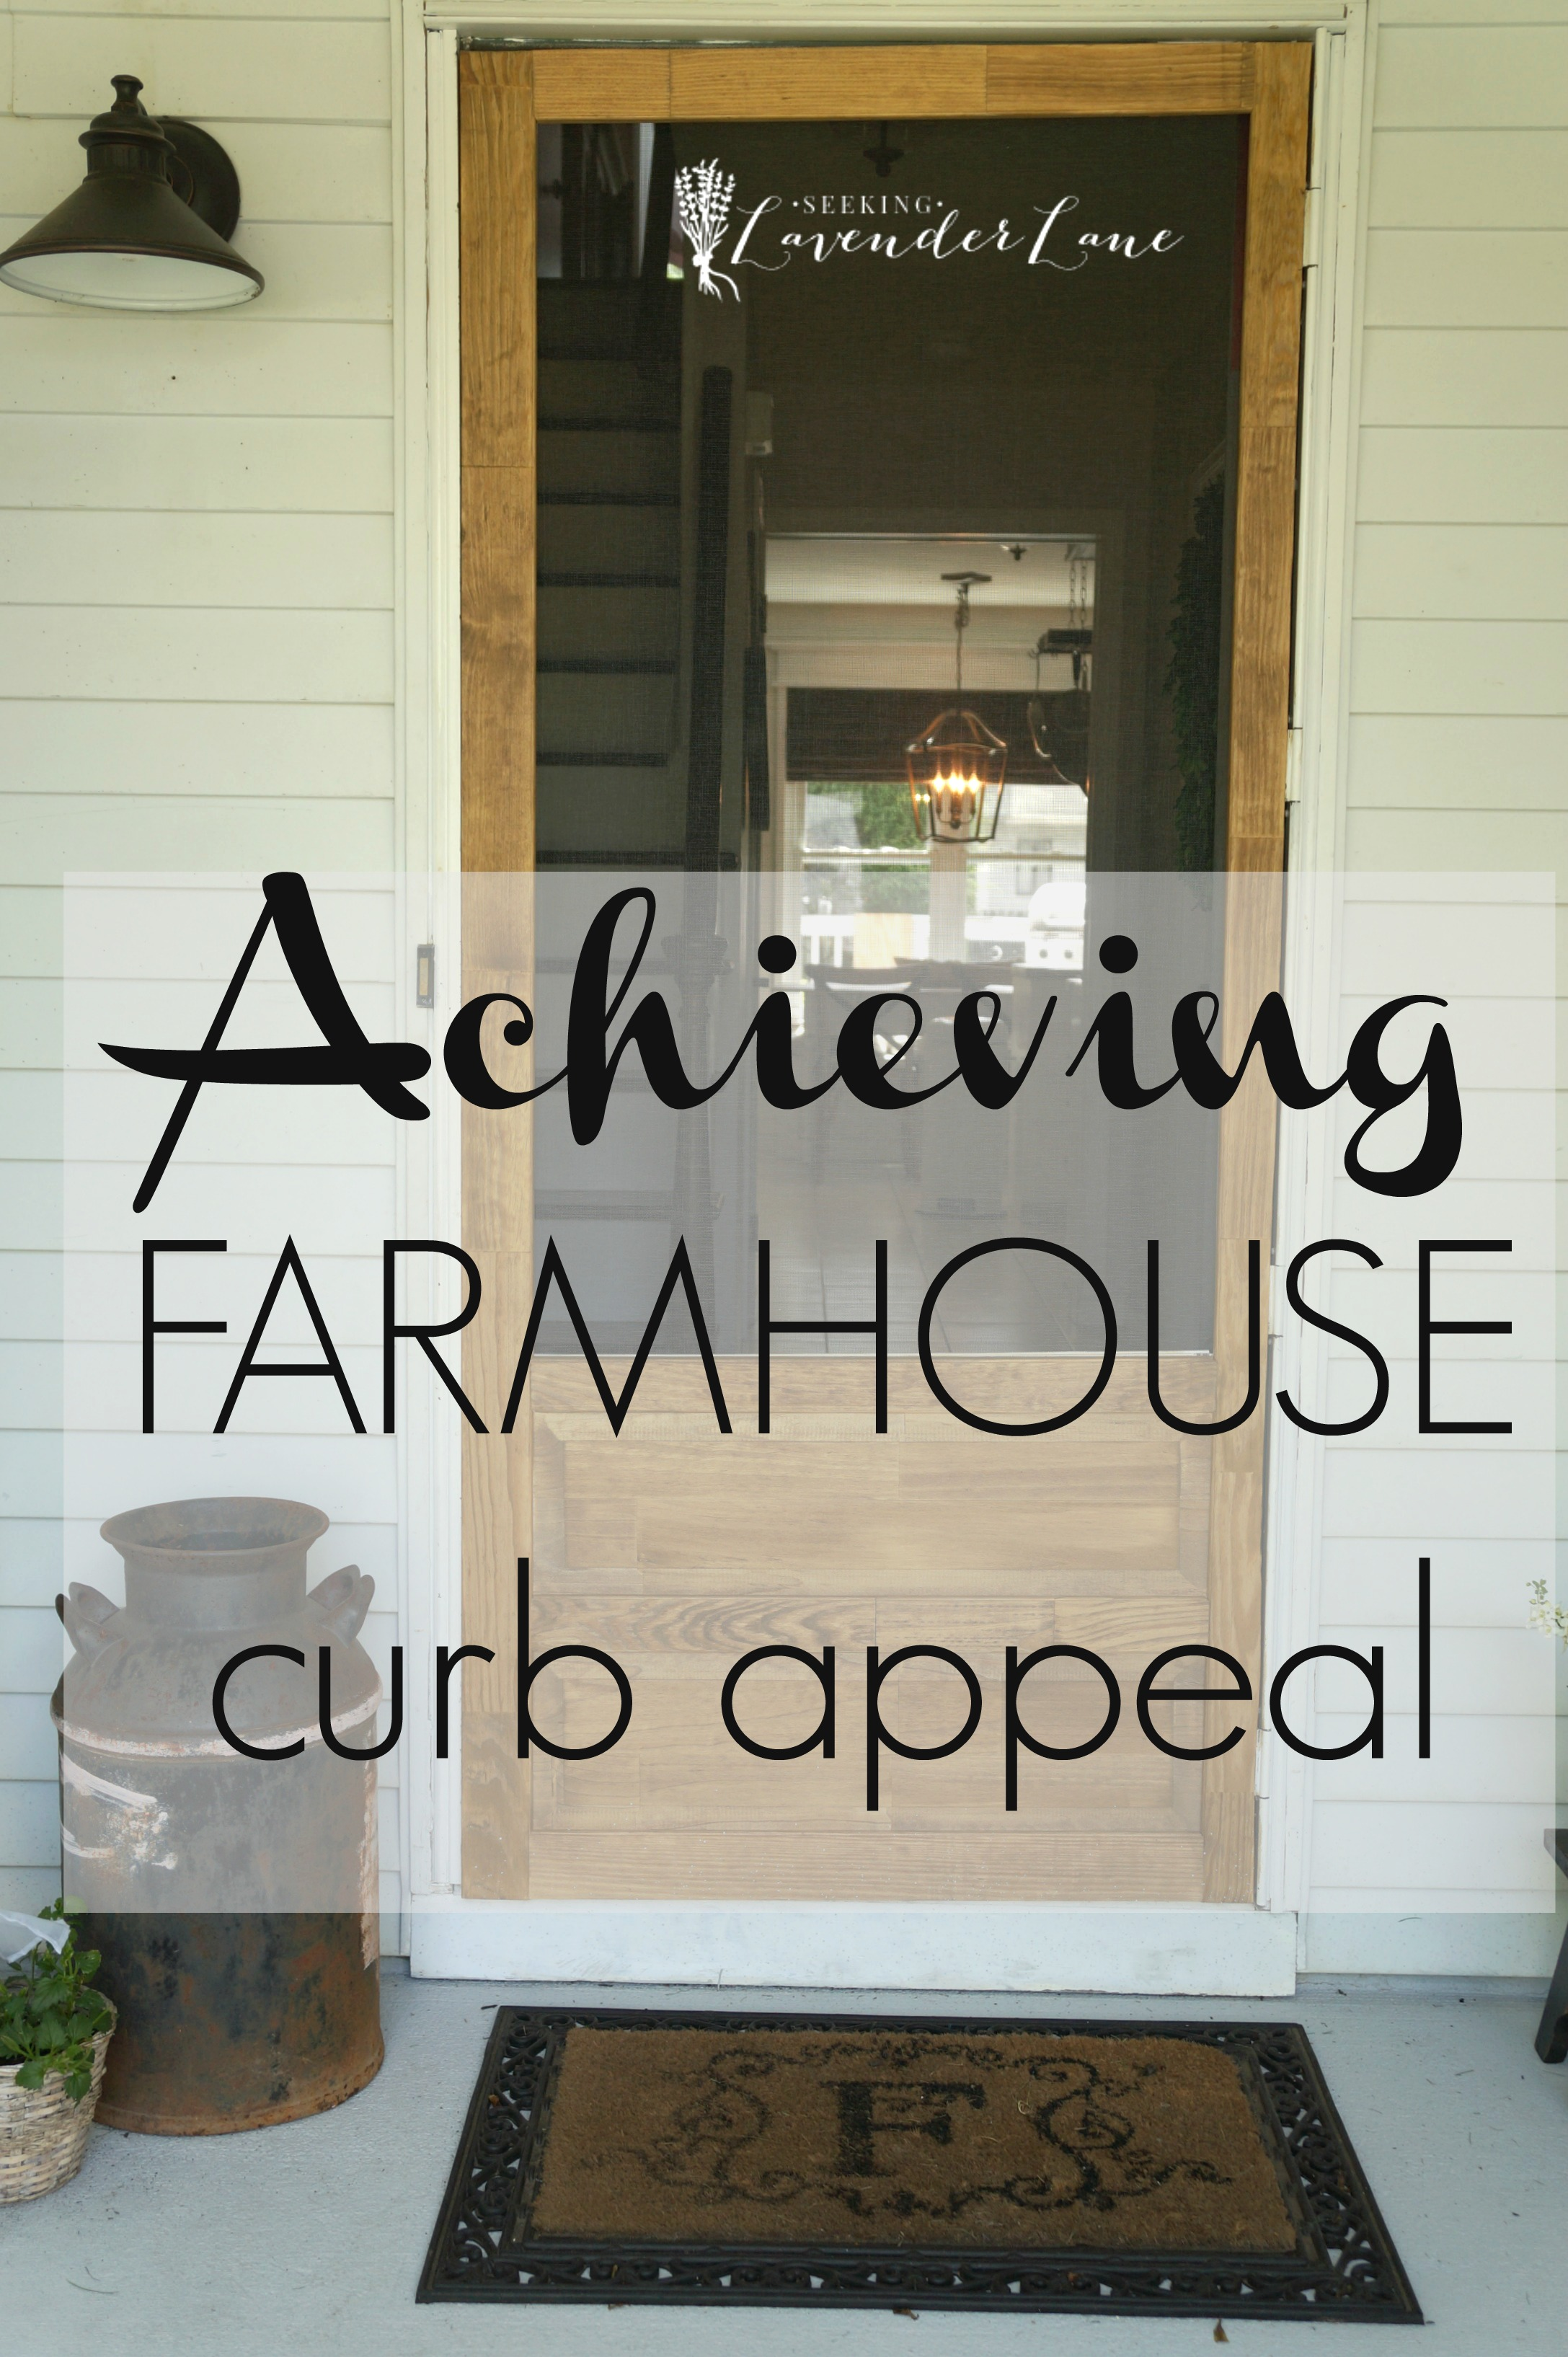 Front Yard Landscaping Ideas Achieving Farmhouse Curb Appeal